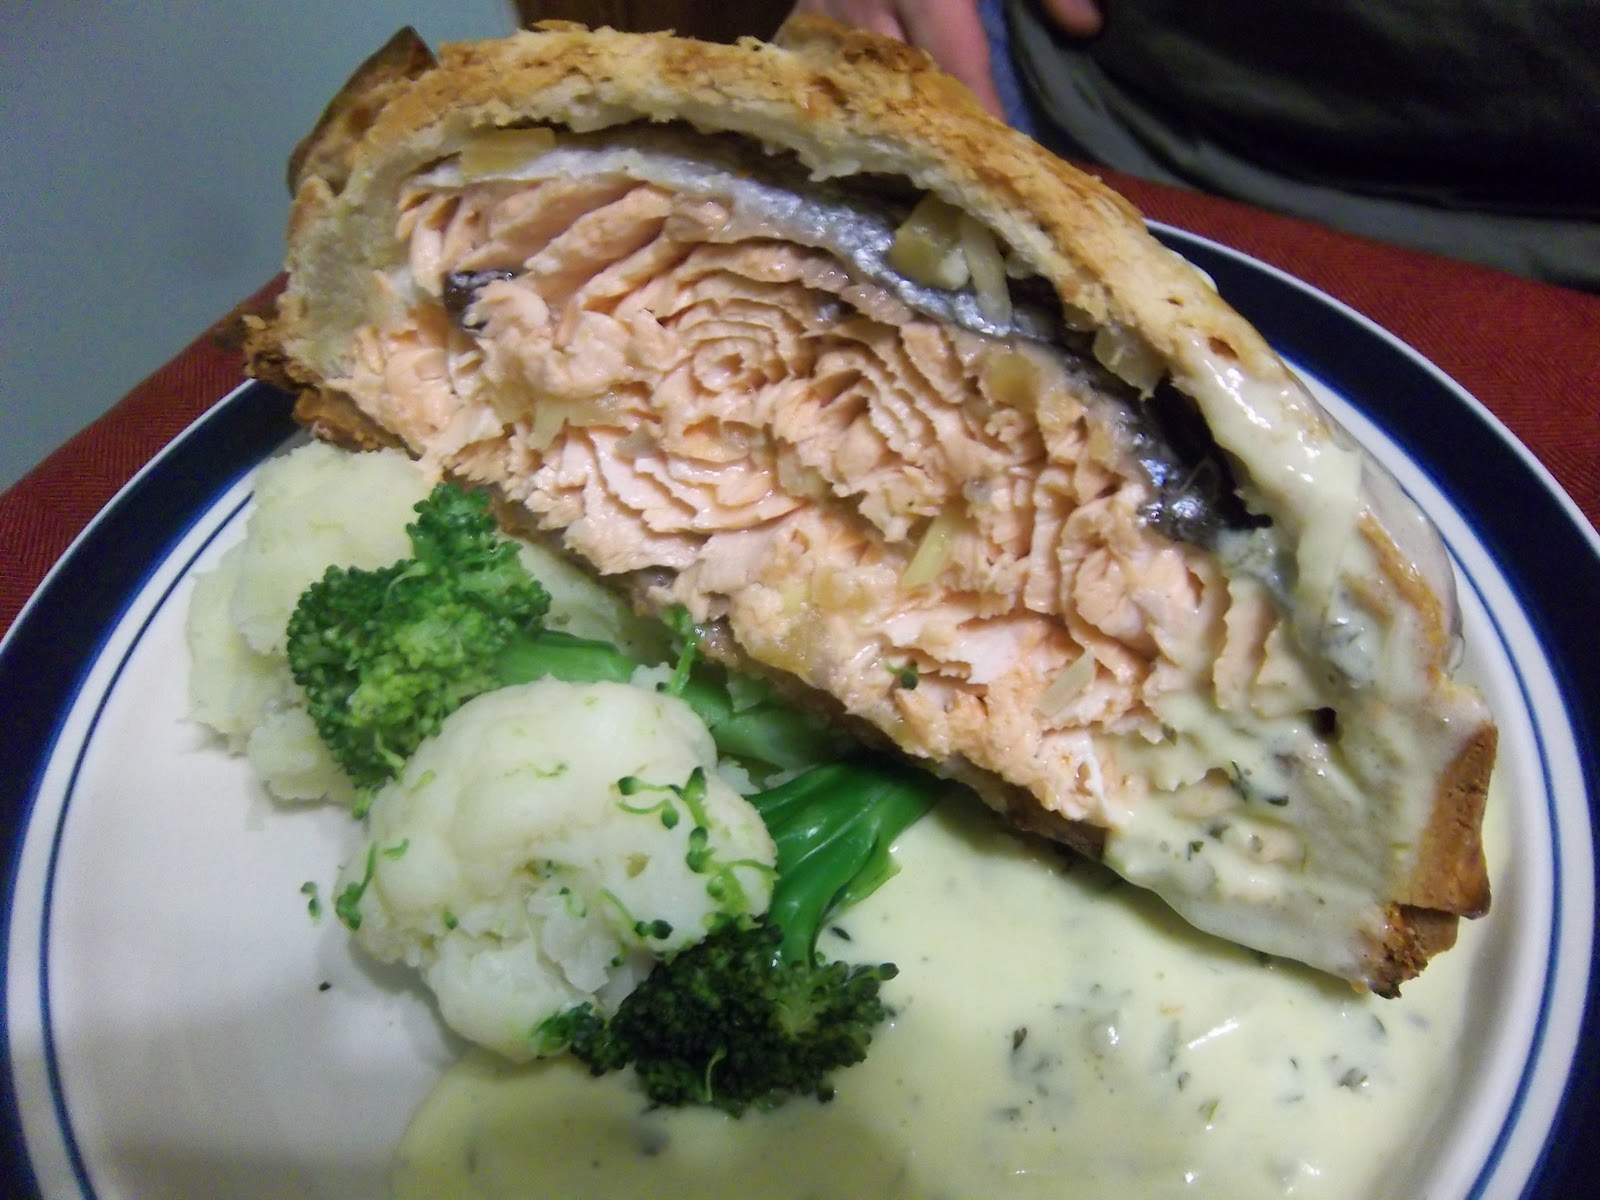 of salmon creamy herb garlic sauce an image of skate with green skate ...